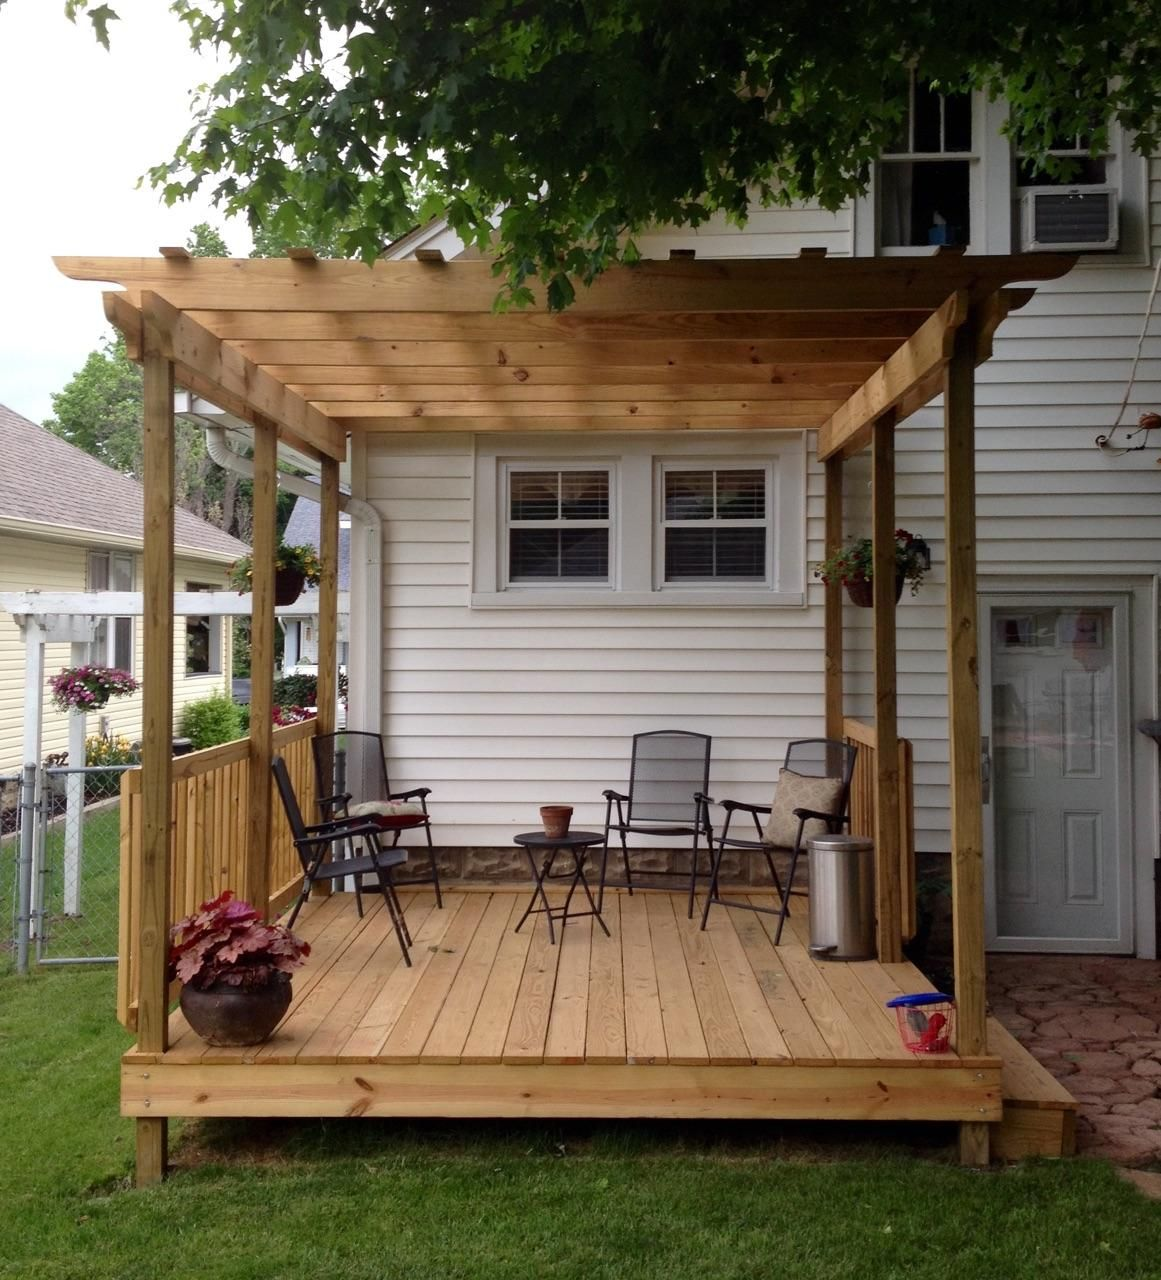 Idea by John Miller on Fences, decks, pergolas, and other ...